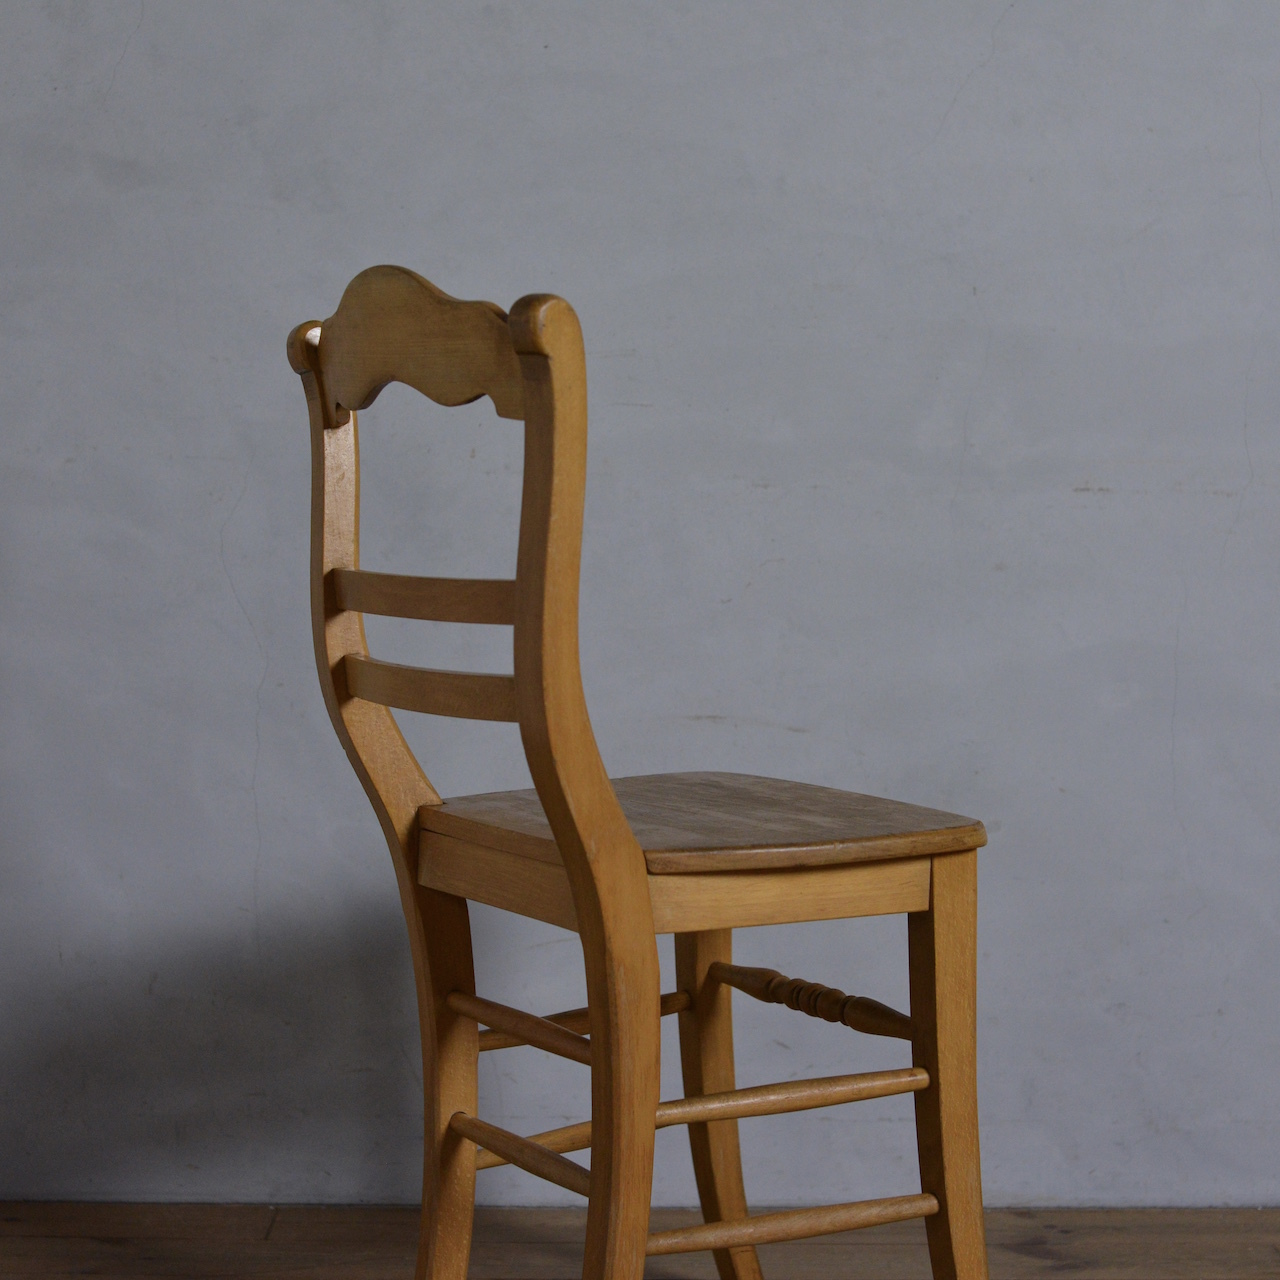 Dining Chair 【A】/ ダイニングチェア 〈チェア・キッチンチェア・椅子〉SB2101-0004 【A】